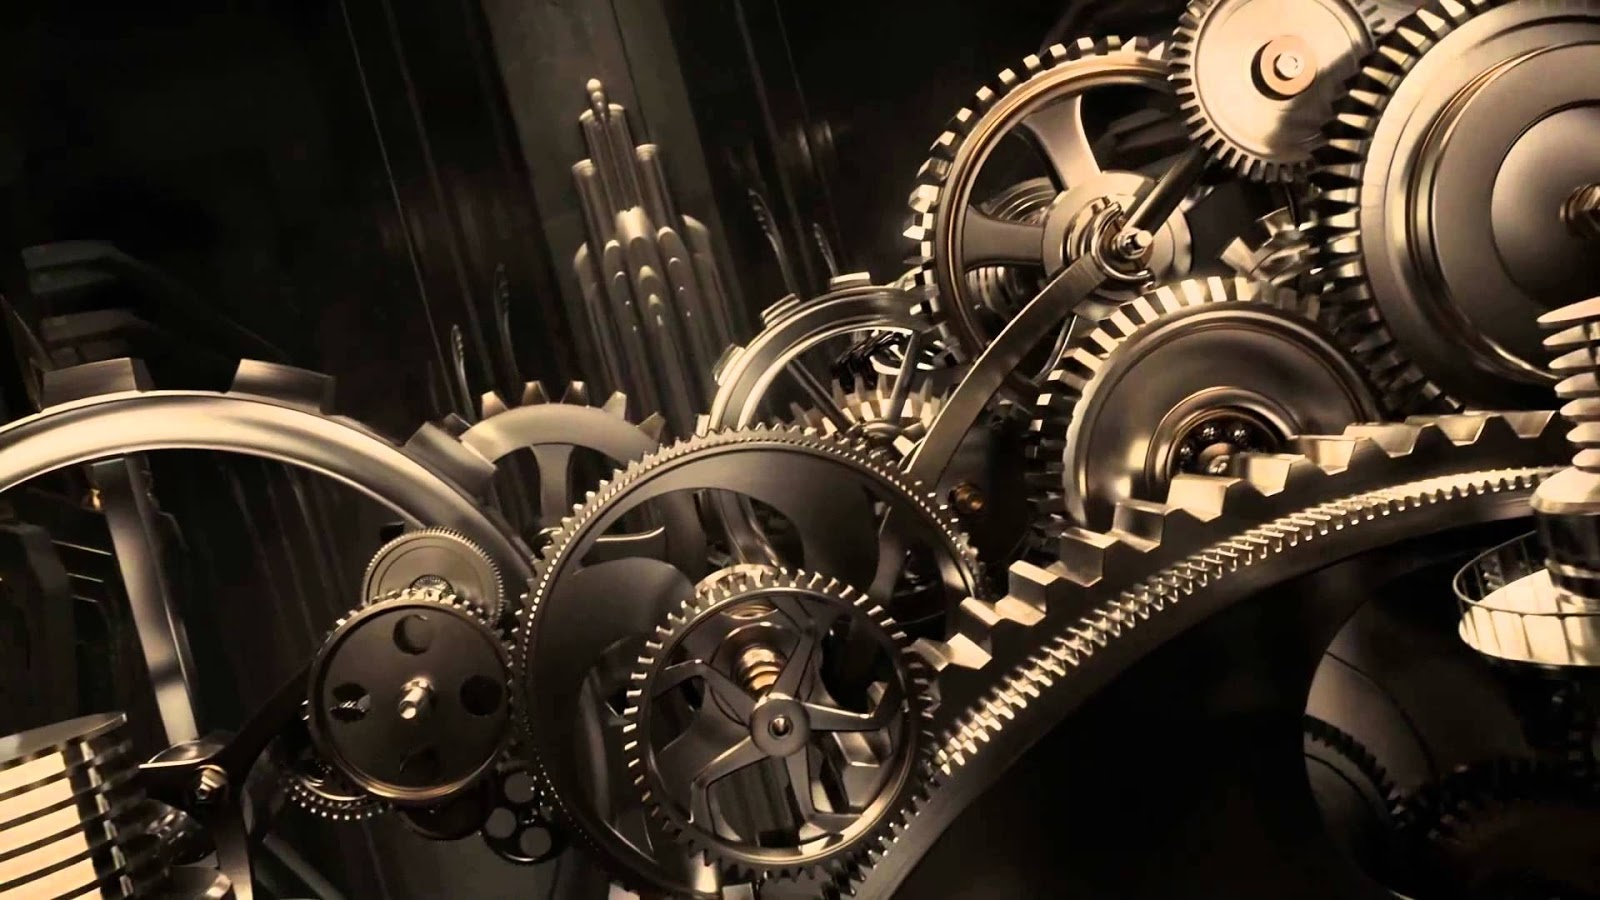 p.hd thesis in mechanical engineering Specific programs of graduate study are established by consultation between students and their advisors ms in mechanical engineering thesis option: 24 hours of course work and 1 hour of graduate seminar are required along with 6 hours of thesis research.